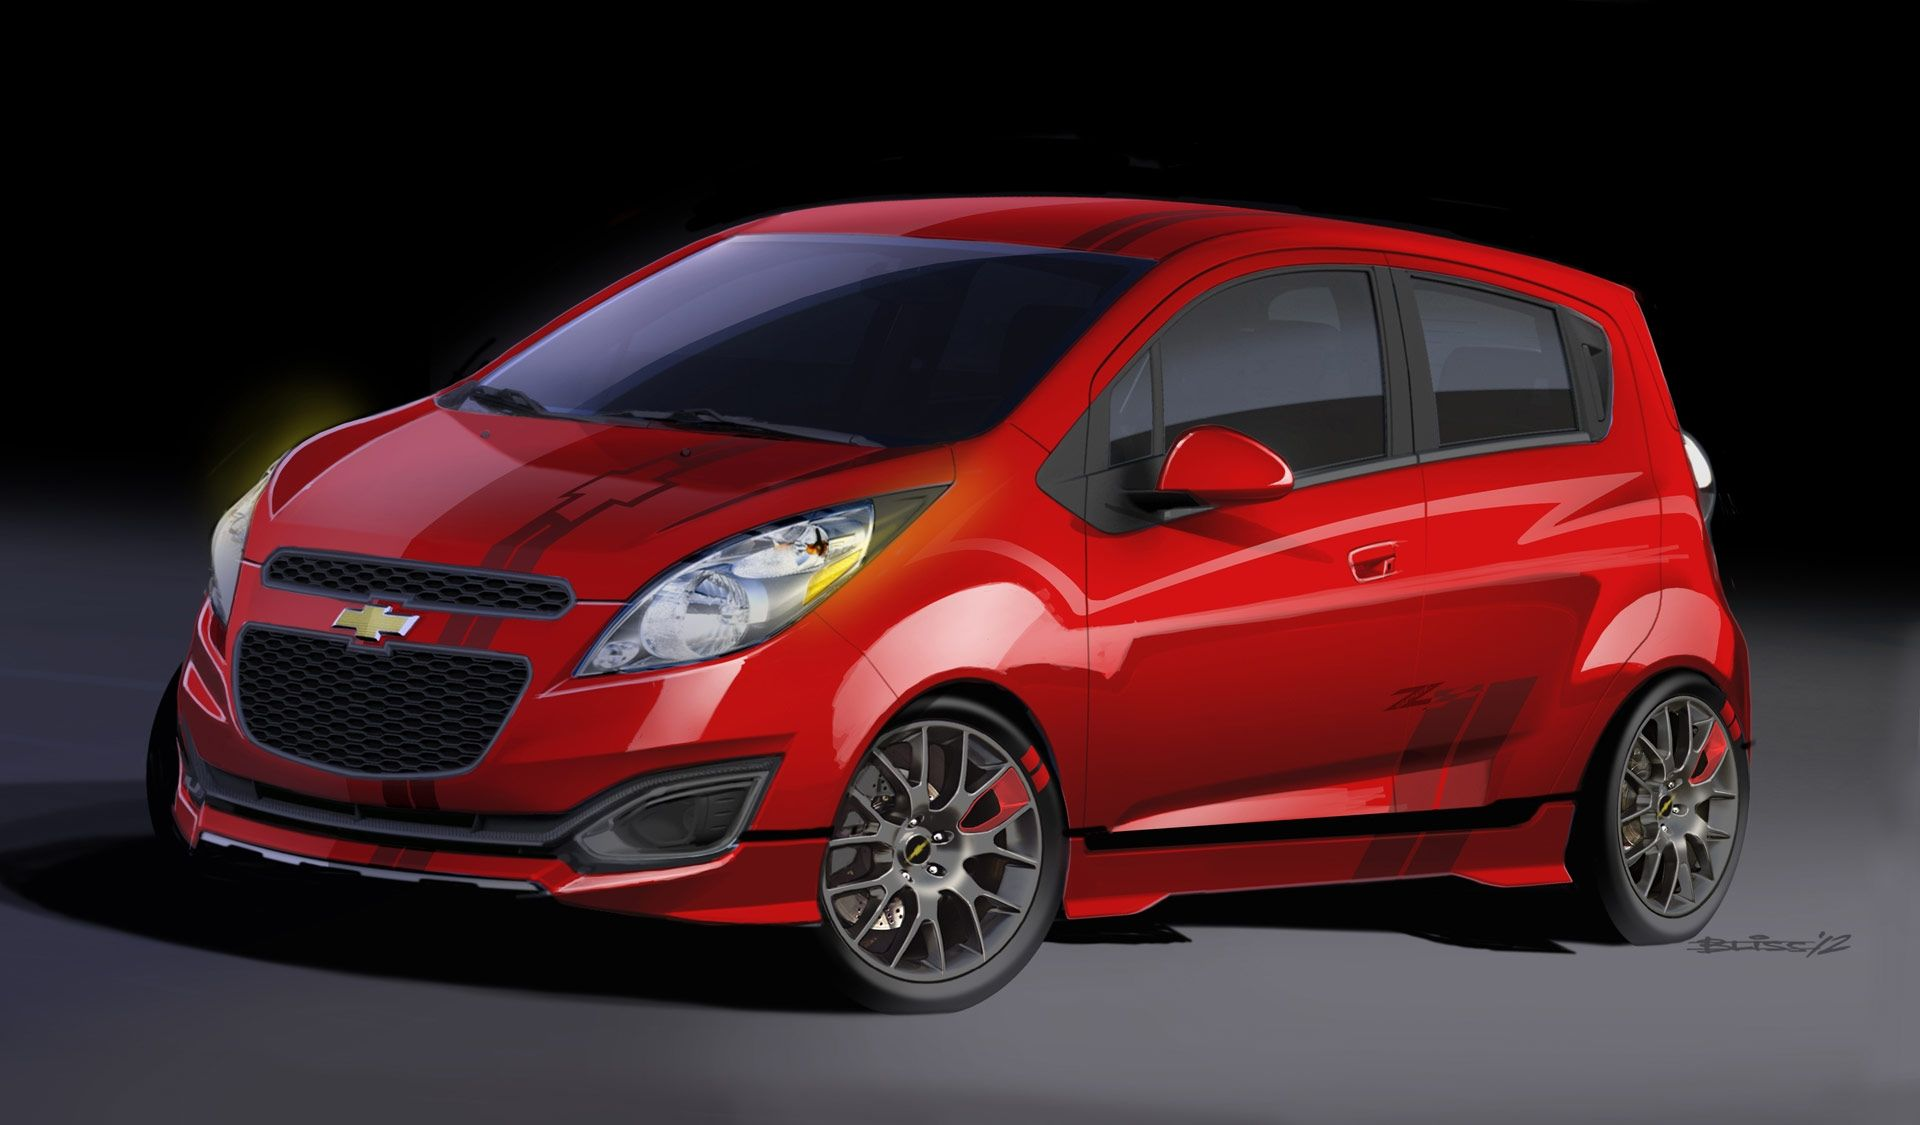 Red Chevrolet Spark Wallpaper Hd Chevrolet Spark Coches